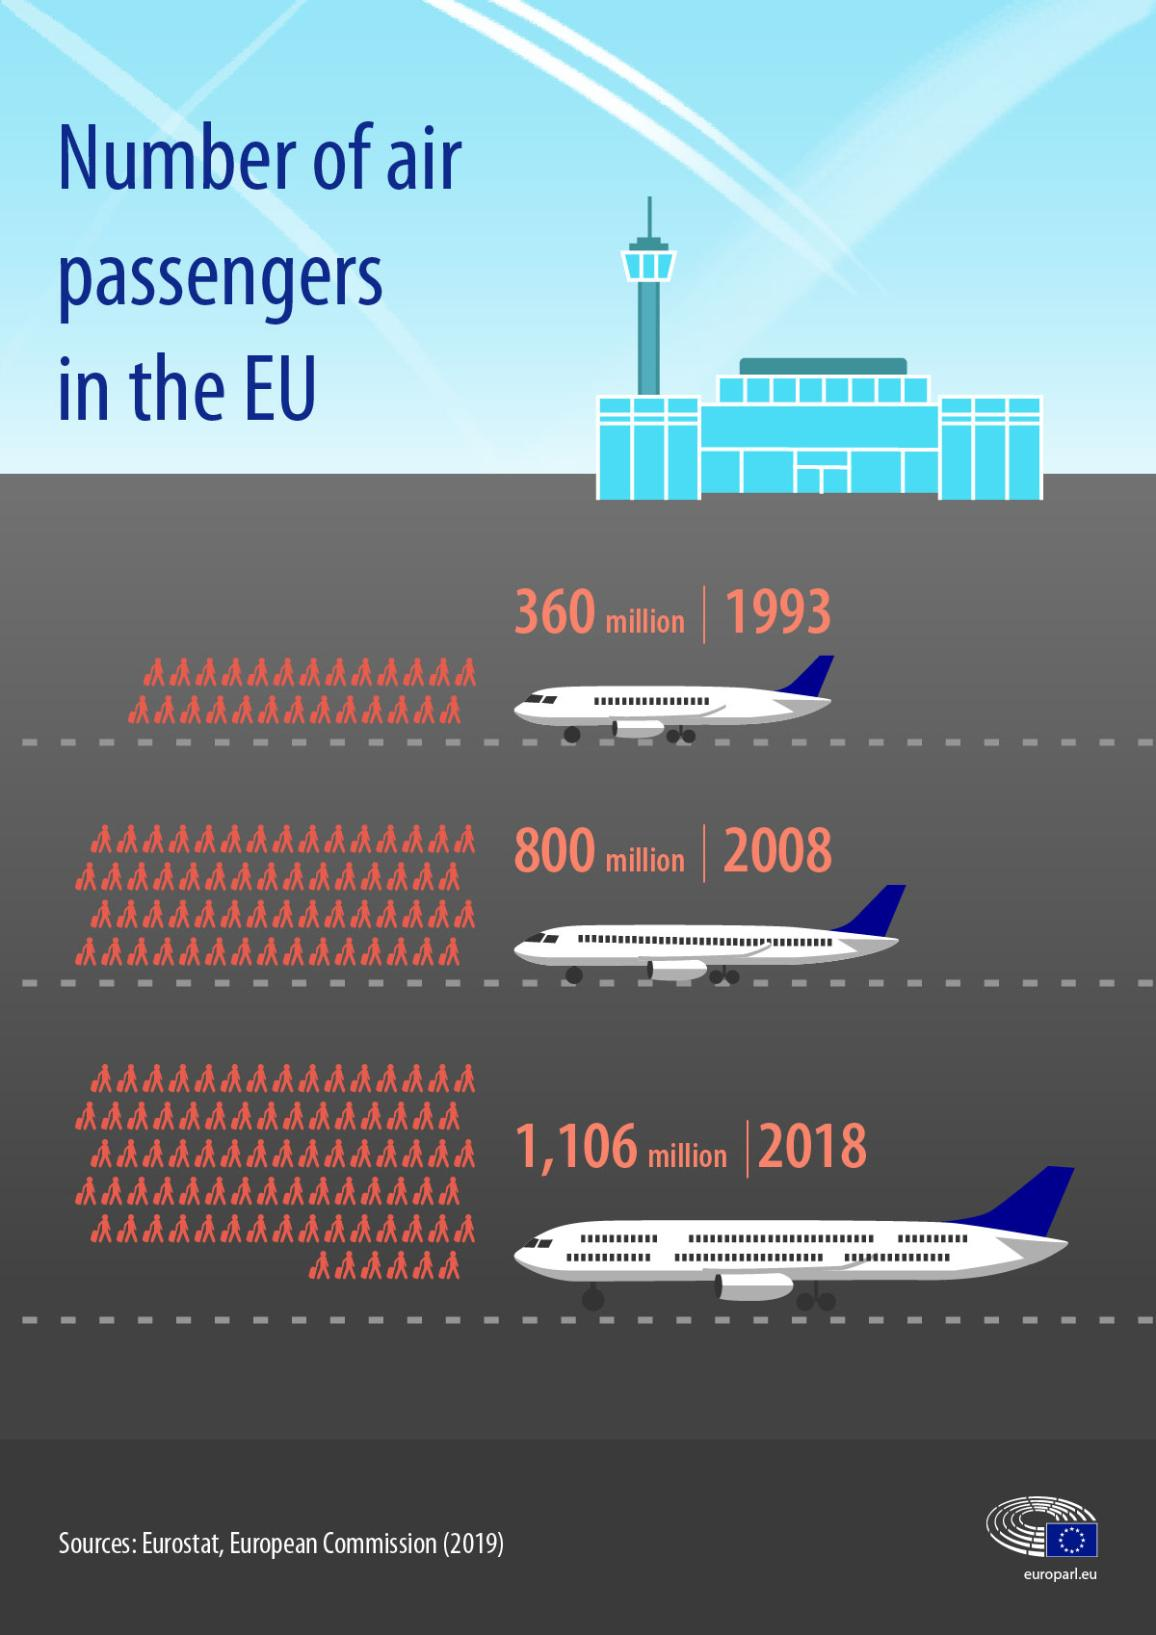 Infographic on the evolution of the number of air passengers in the EU